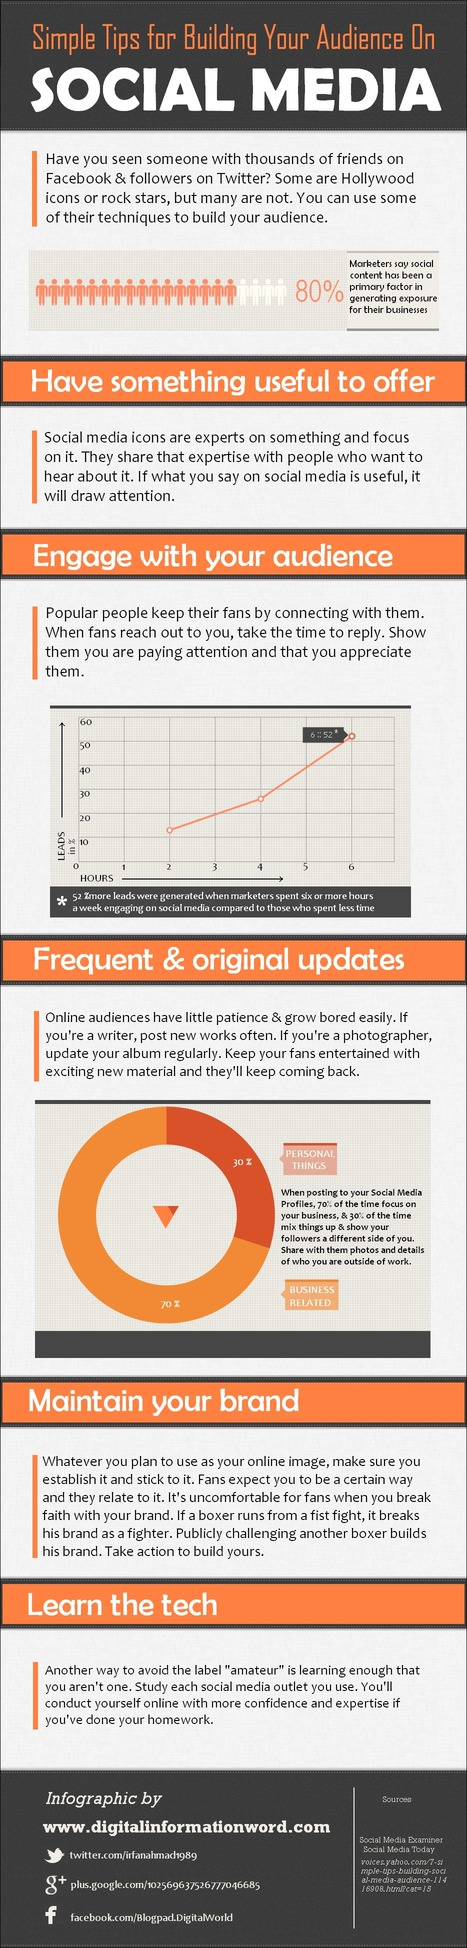 Simple Strategies For Growing A Social Media Audience [Infographic] | SocialMedia | Scoop.it